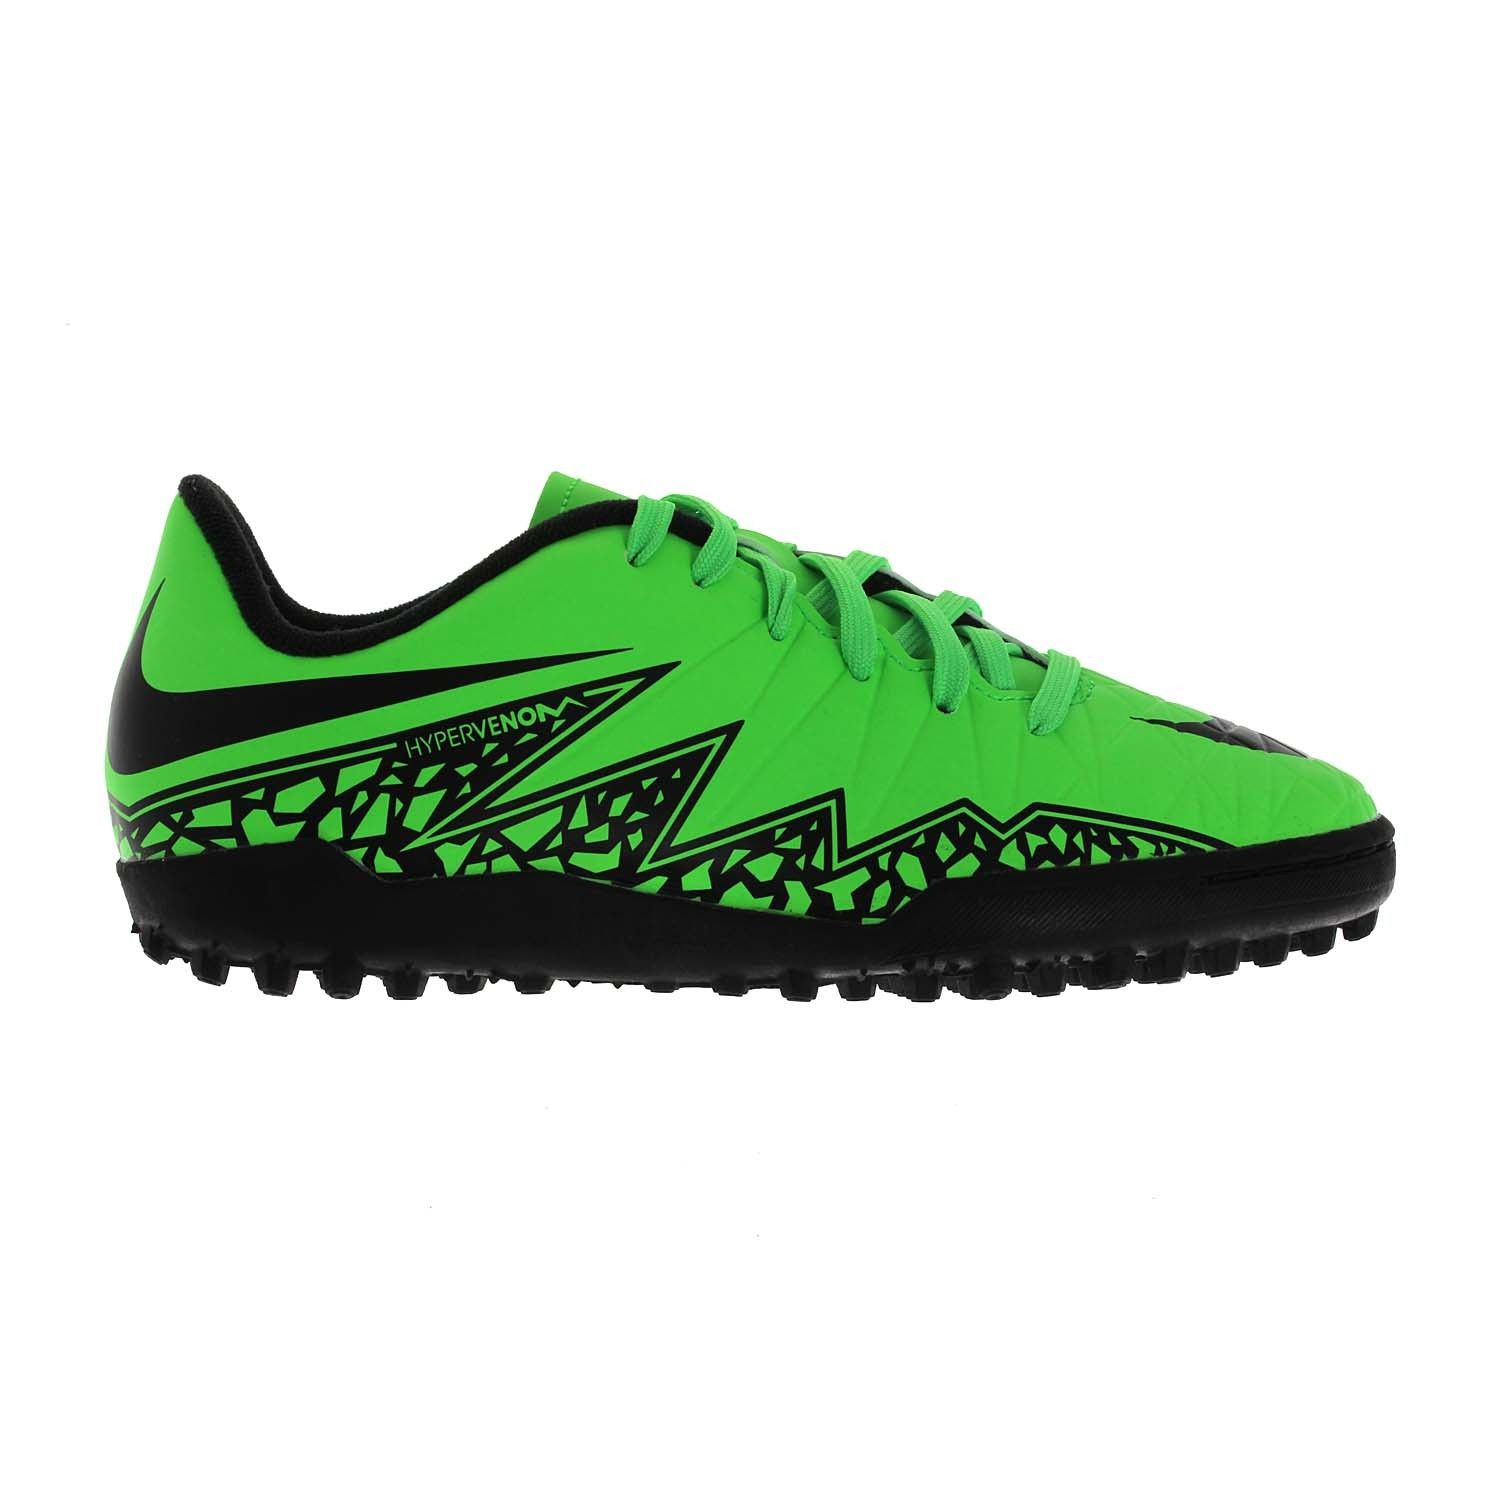 The Nike Hypervenom Phade II Men's TF Football Cleat features strategically  placed rubber studs for excellent traction.